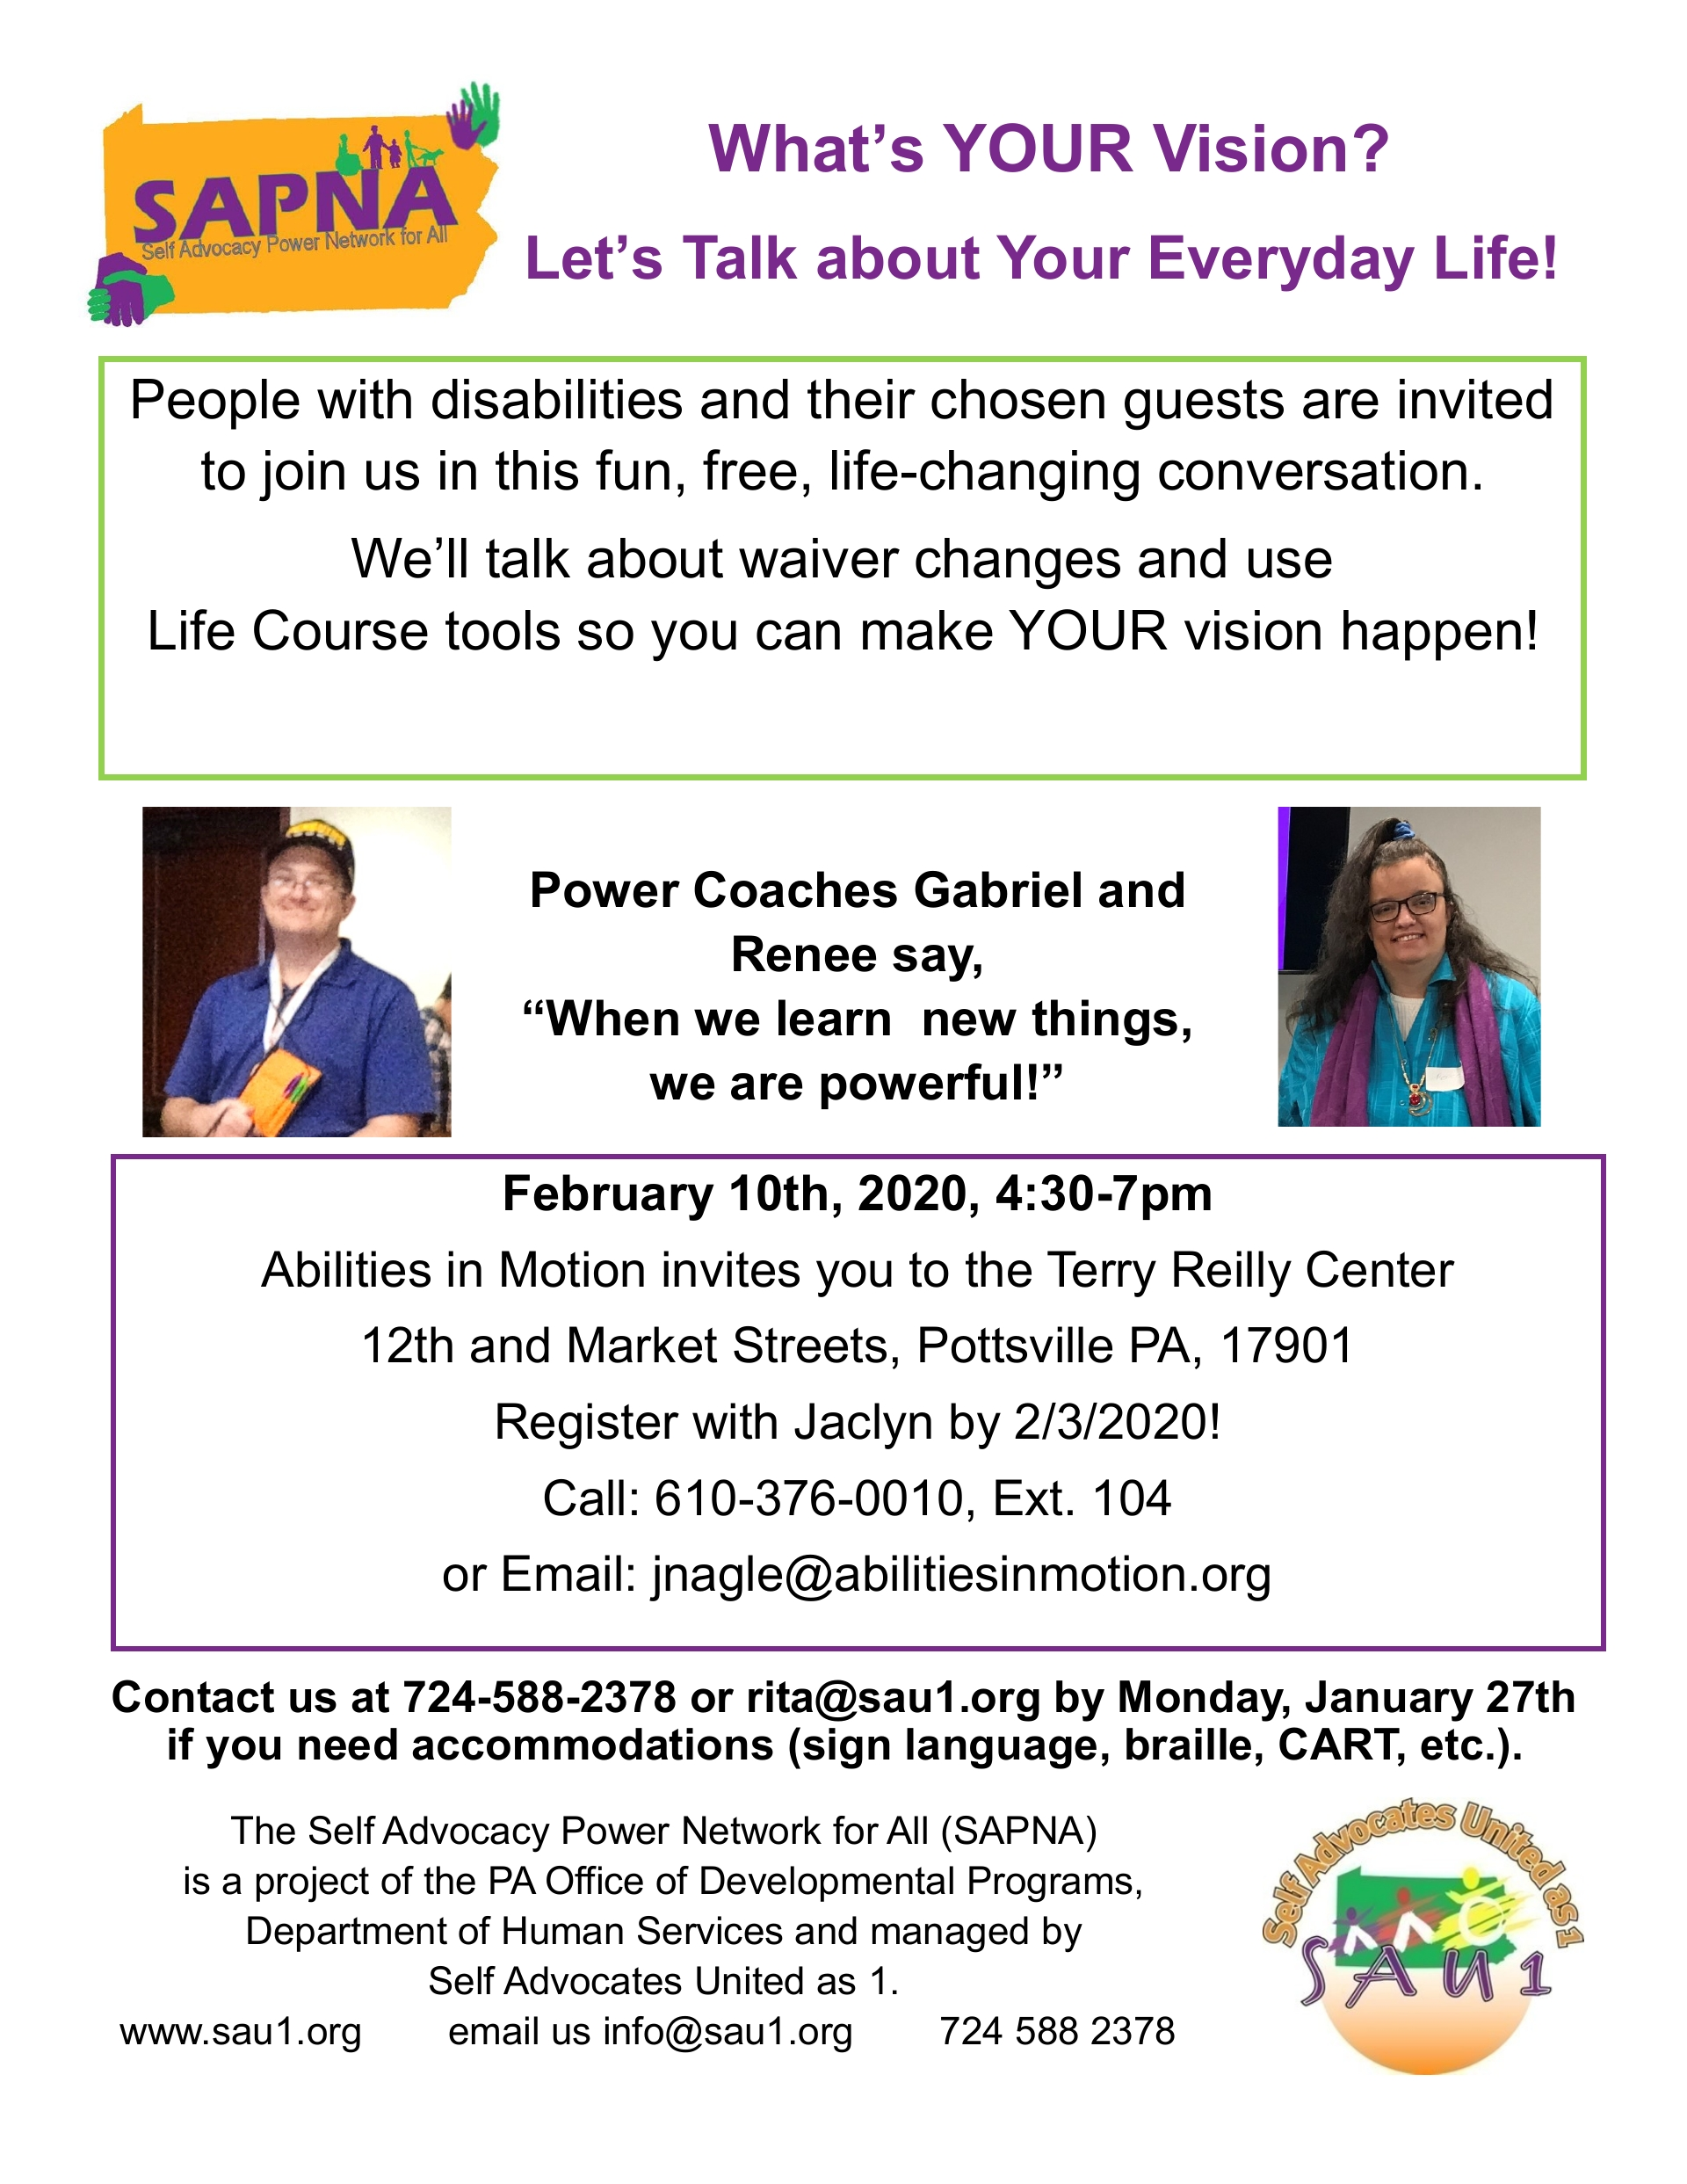 TRAINING  Let's Talk About Your Vision for Your Everyday Life! Montg, Bedford, Phil, Berks Counties